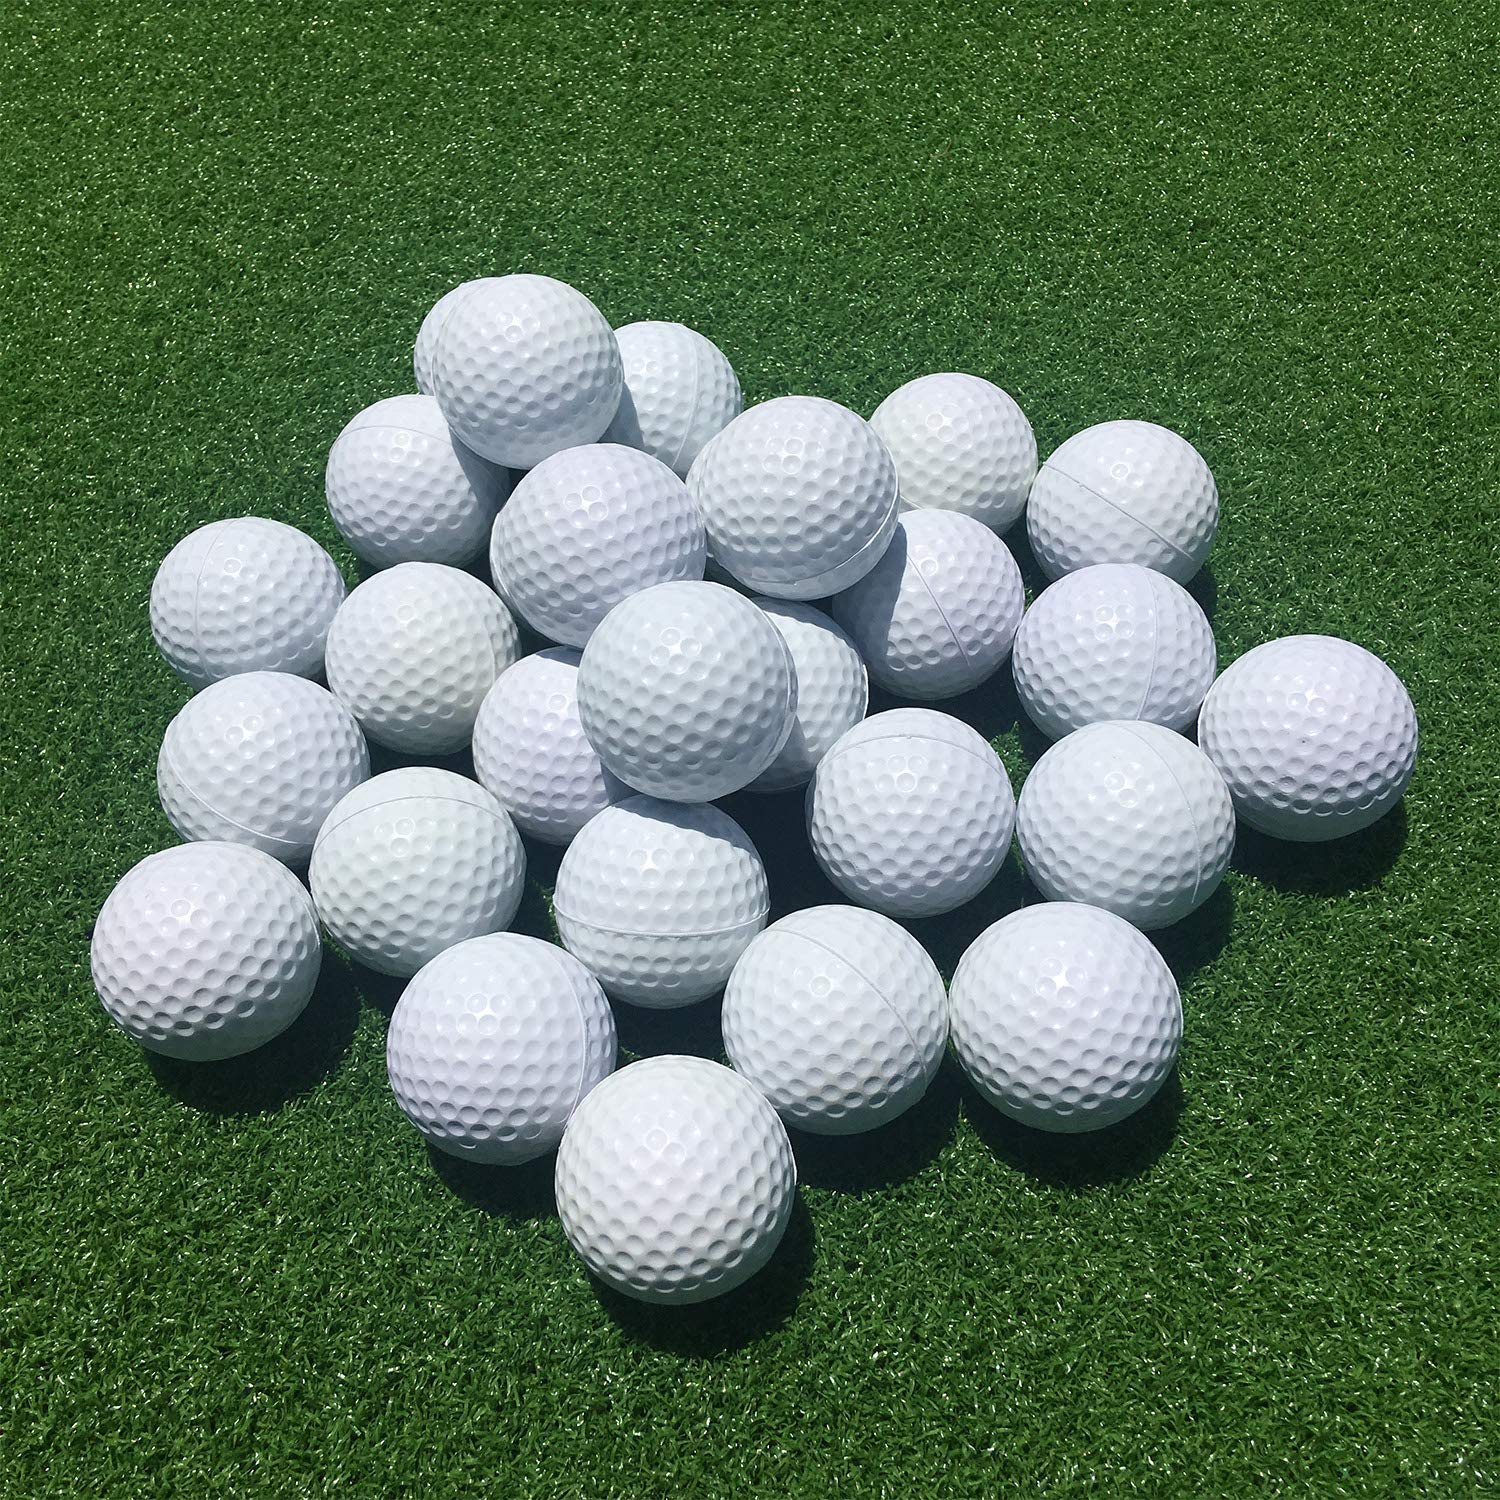 SkyLife Golf Practice Balls 24 Count, Soft Golf Foam Balls for Indoor Outdoor Backyard Training (White 24pcs) by SkyLife